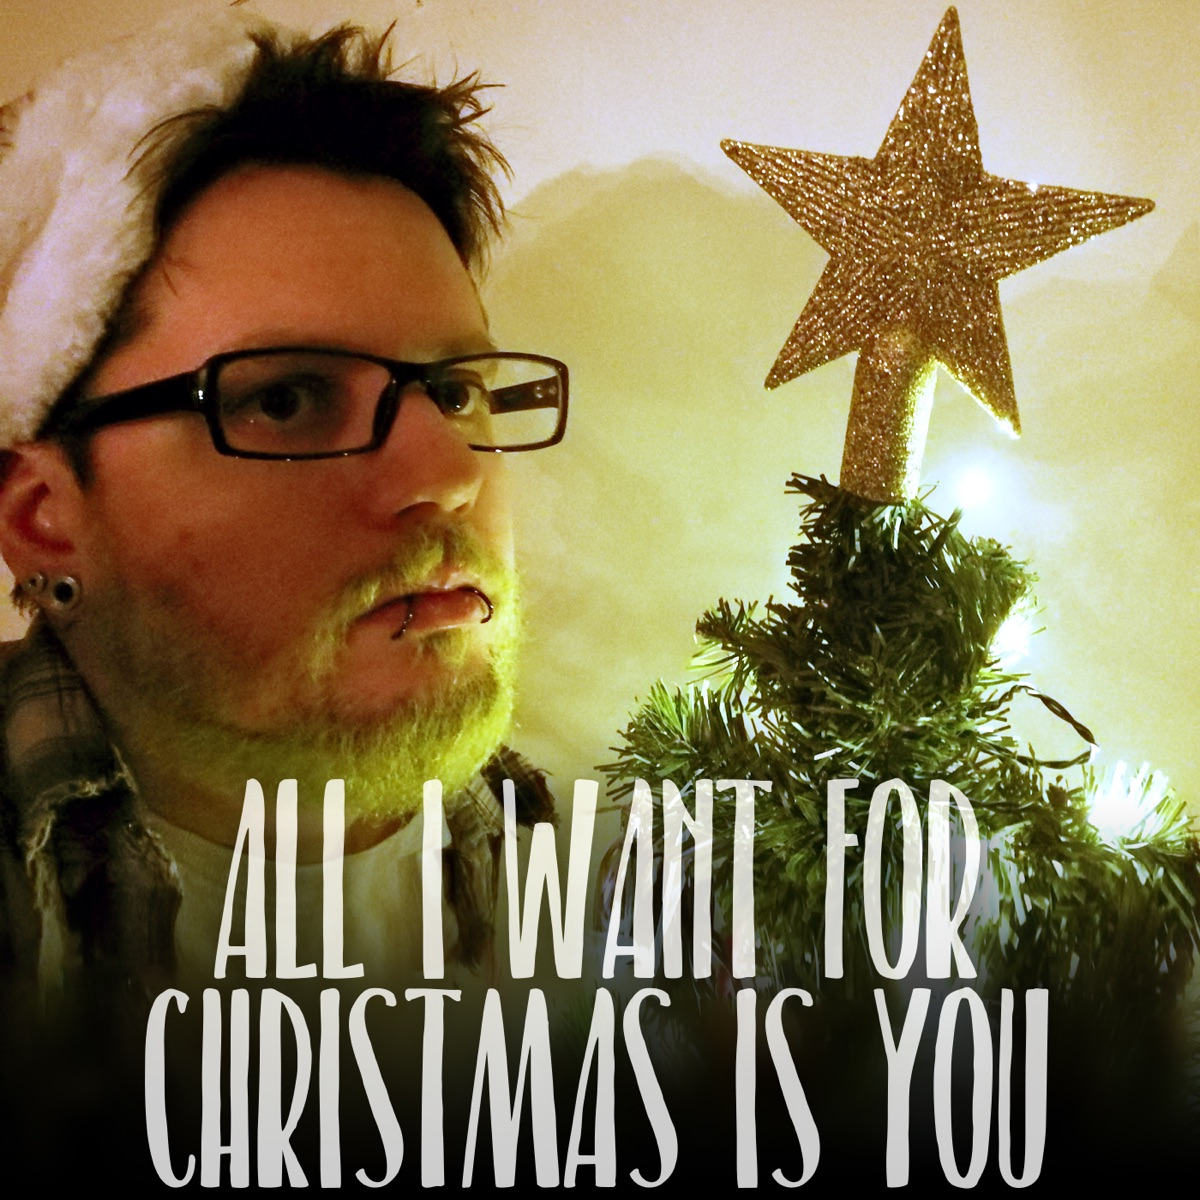 All I Want for Christmas is You Rock Version - Single Jack Muskrat CD cover